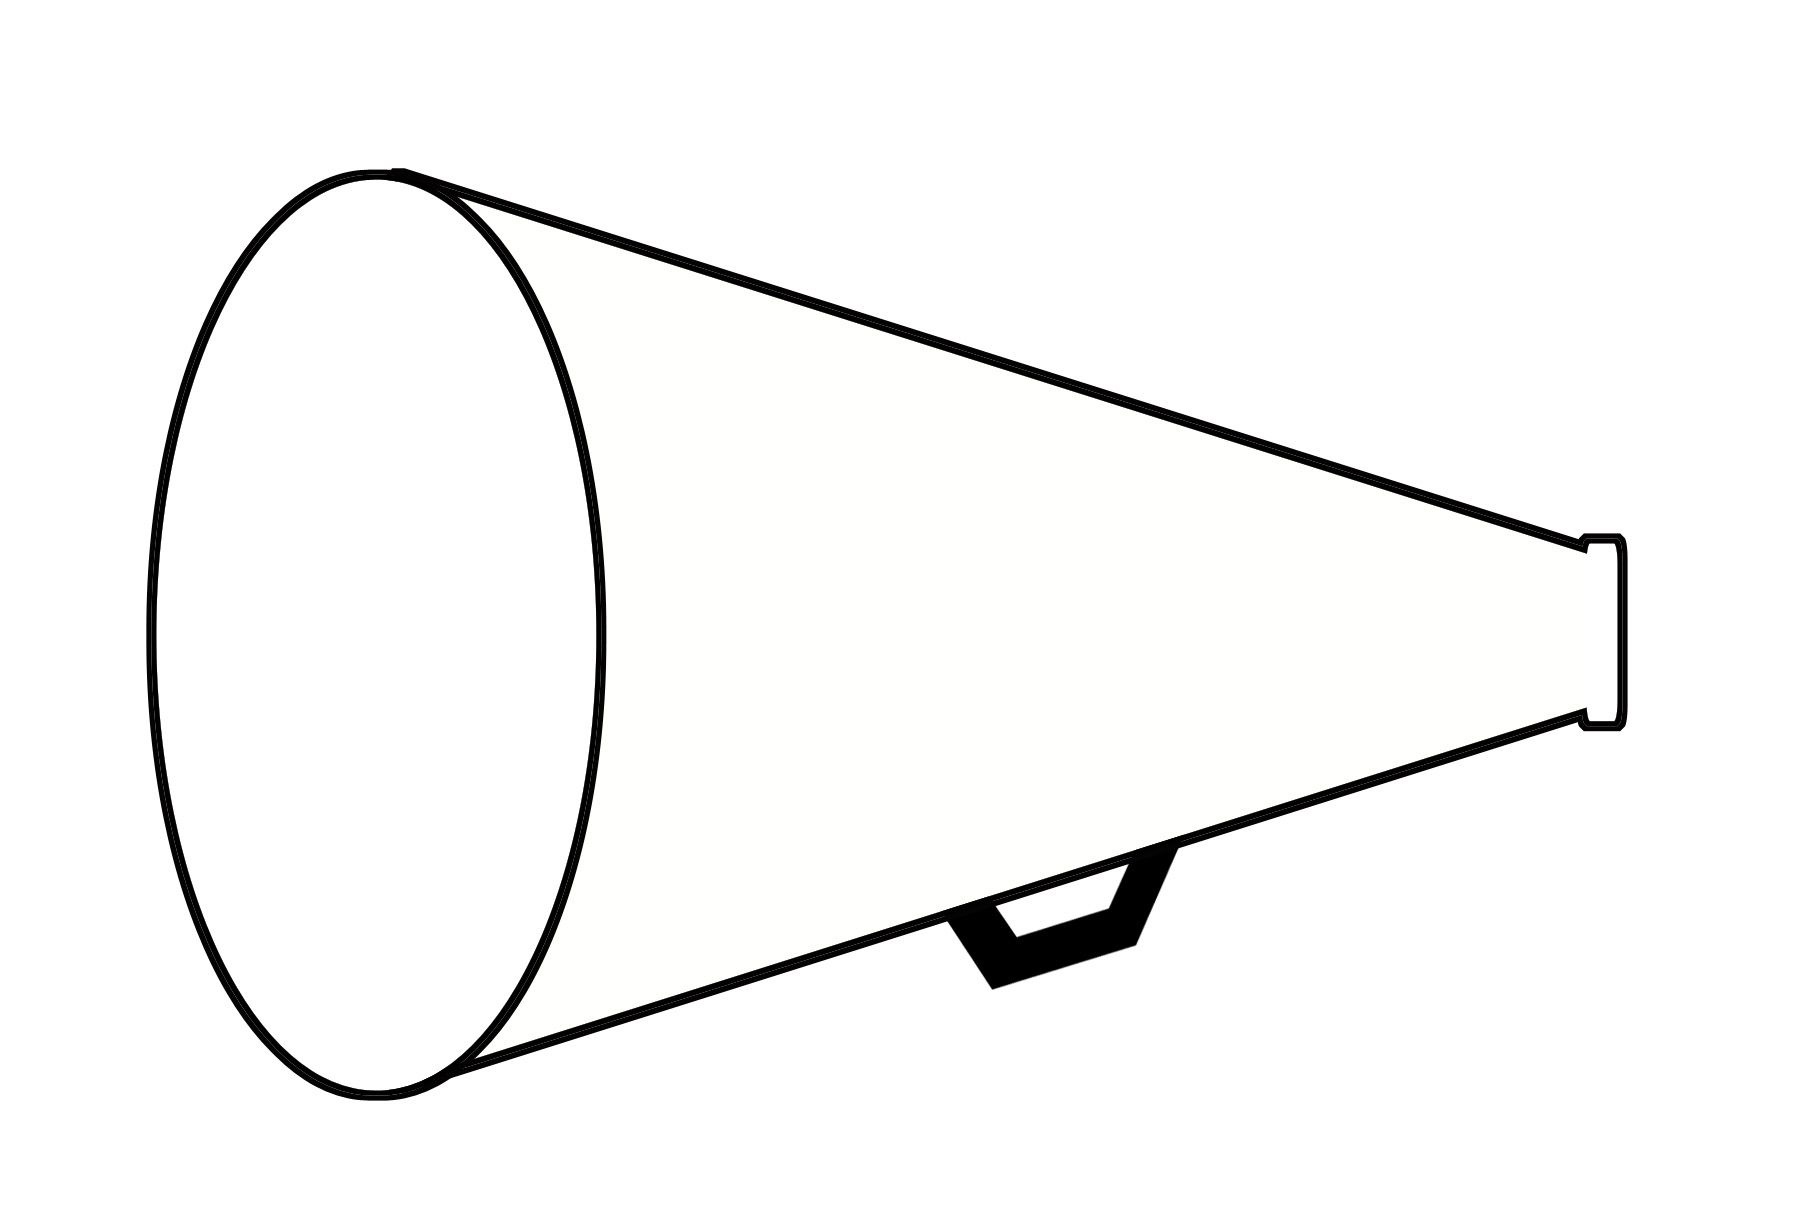 Cheerleading Megaphone And Poms Clipart Top Hd Images For Free 2 - Free Printable Megaphone Template